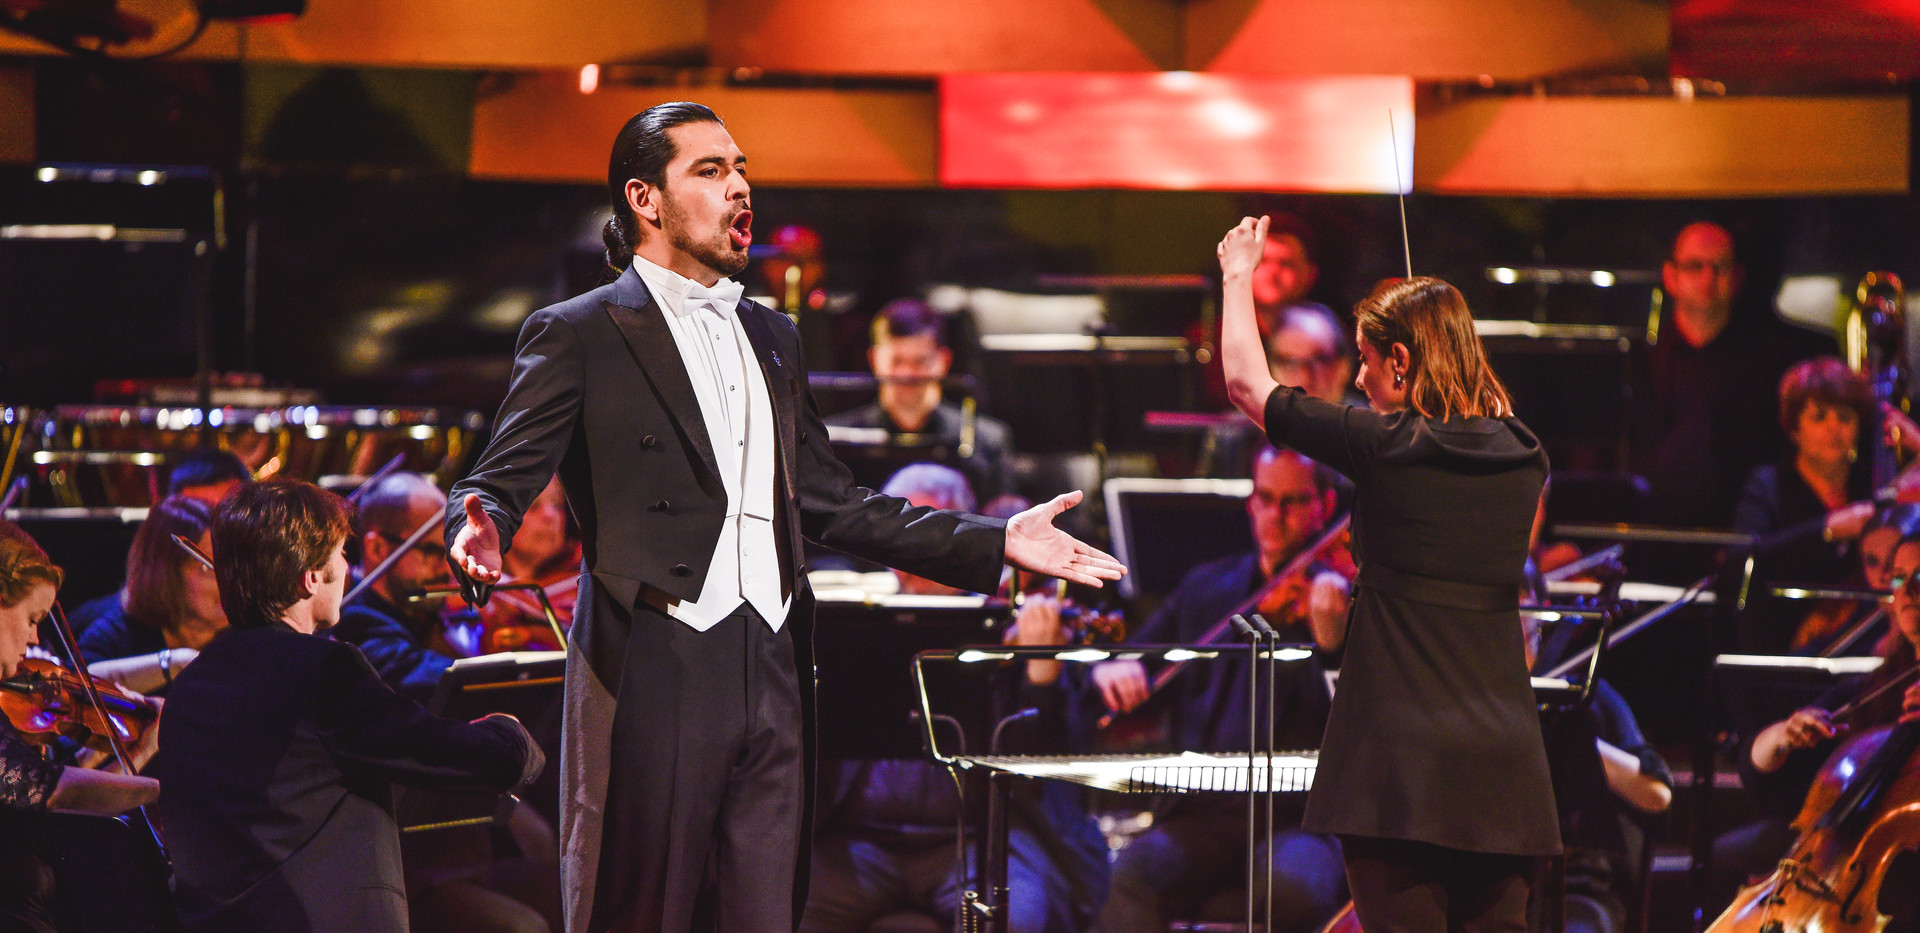 Ariane Matiakh - conductor Welsh National Opera Orchestra 2019 BBC Cardiff Singer of the World photo - Kirsten McTernan